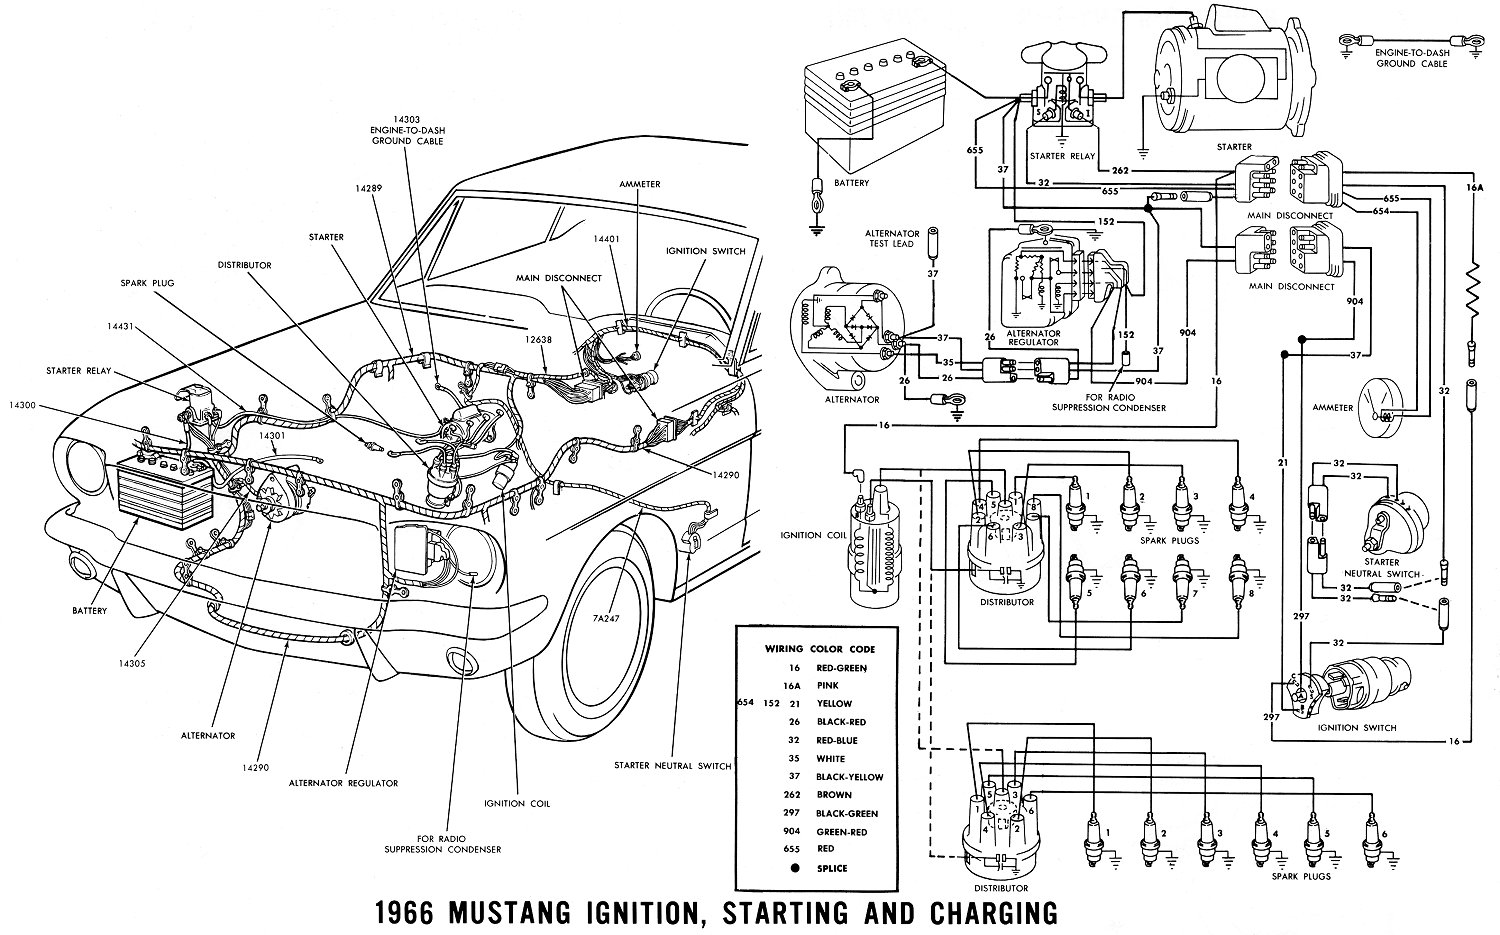 1966 Mustang Ignition Wiring Diagram besides Page 2 moreover 1992 Isuzu Trooper Wiring Diagram in addition 1992 Honda Prelude Air Conditioner Electrical Circuit And Schematics additionally 1163128 Need Help With 1962 F100 Ignition Switch Wiring. on isuzu truck wiring diagram pdf